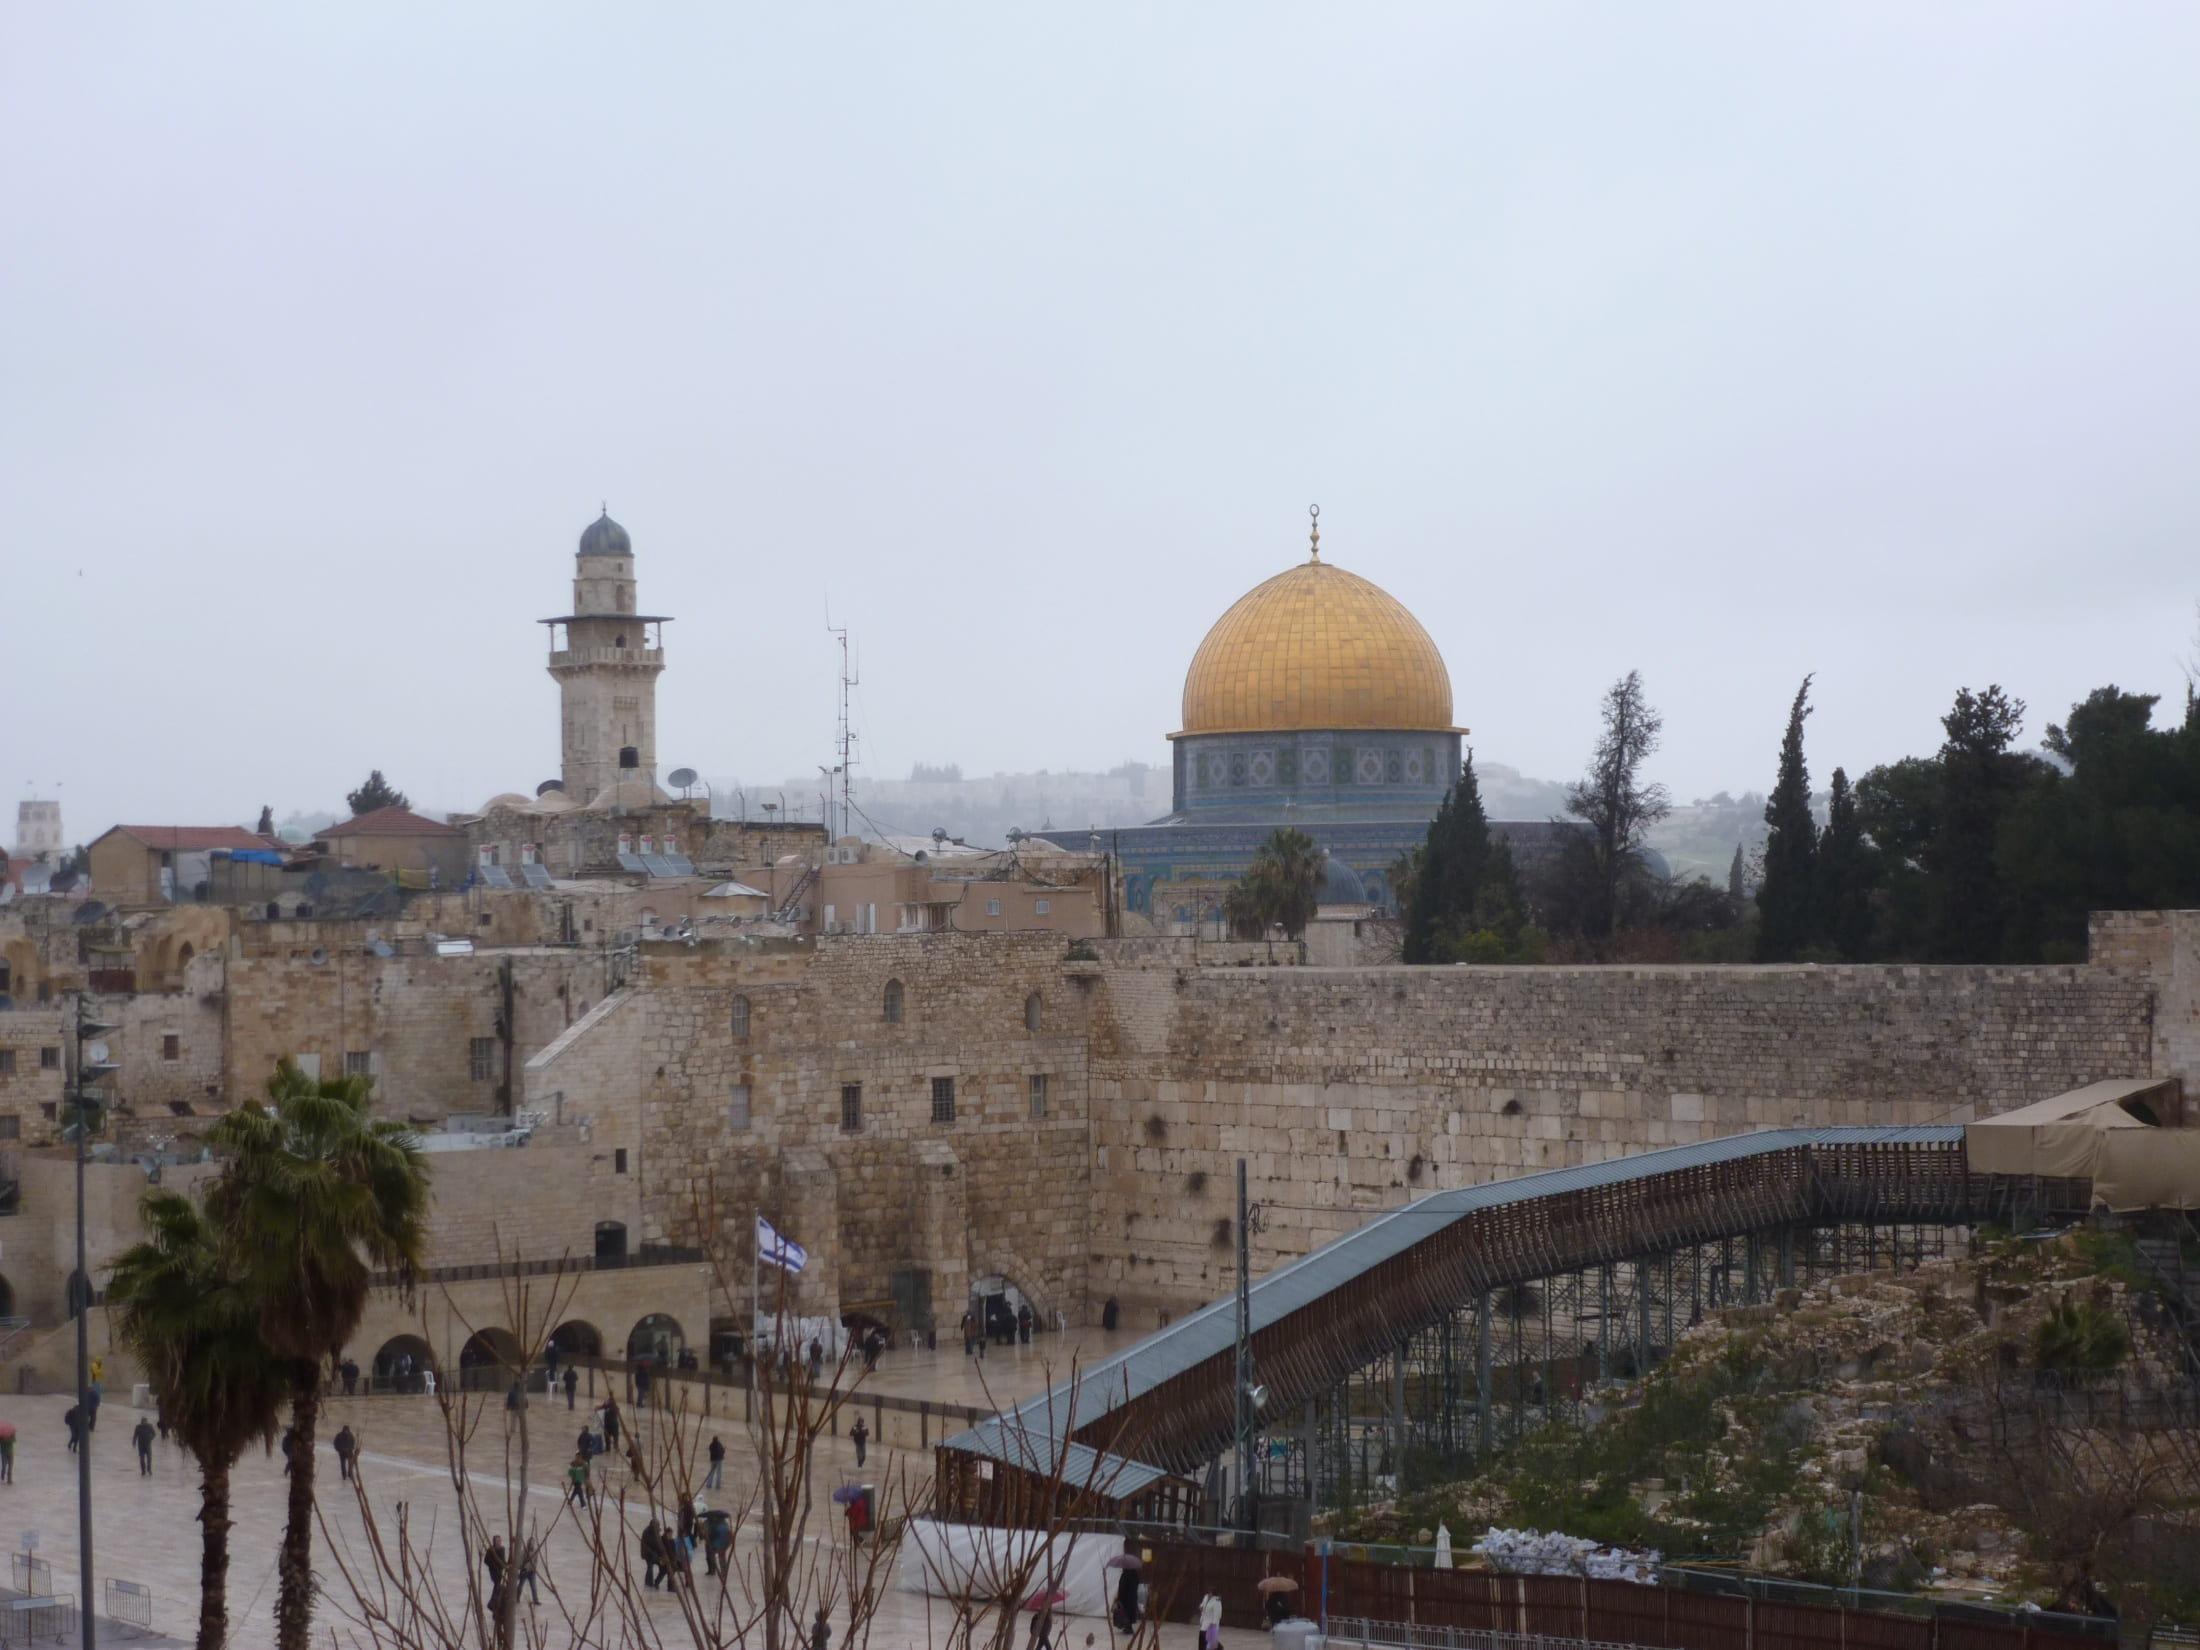 A photo of the Wailing Wall and al-Asqa mosque in Jerusalem.